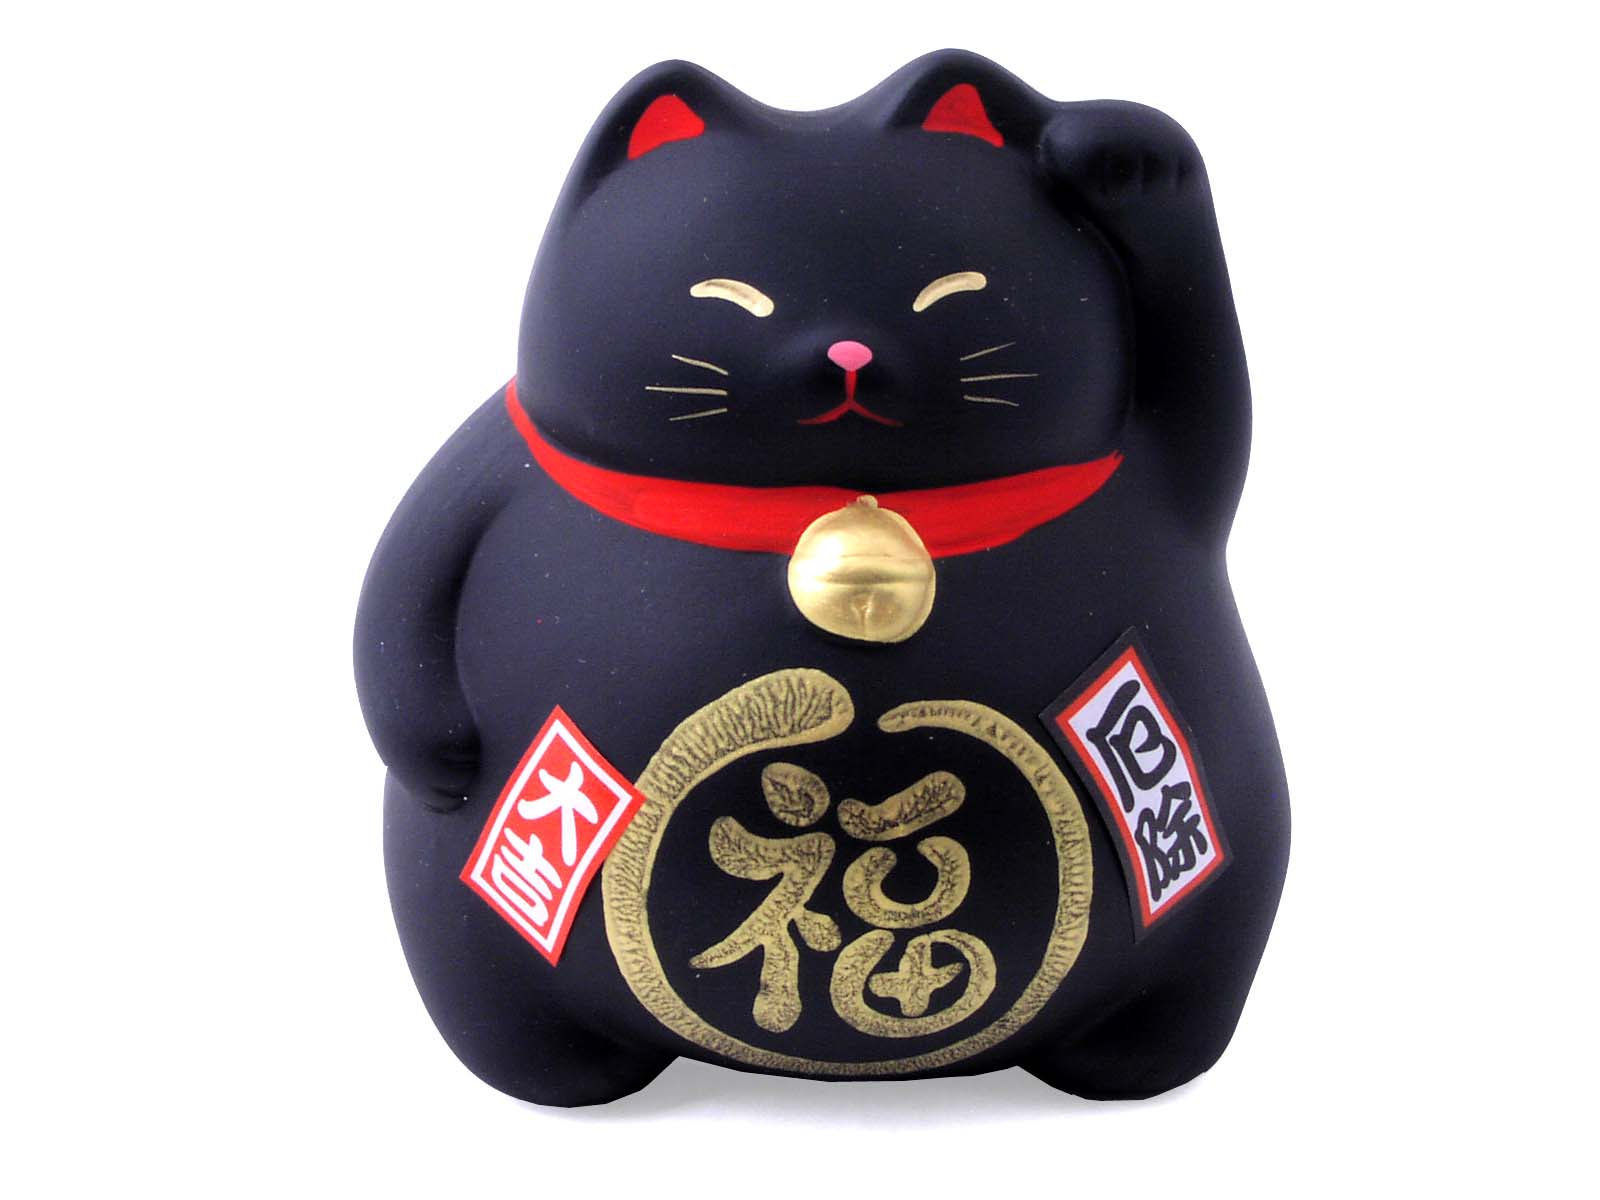 Black Maneki Neko Figurine/Bank - photo#26